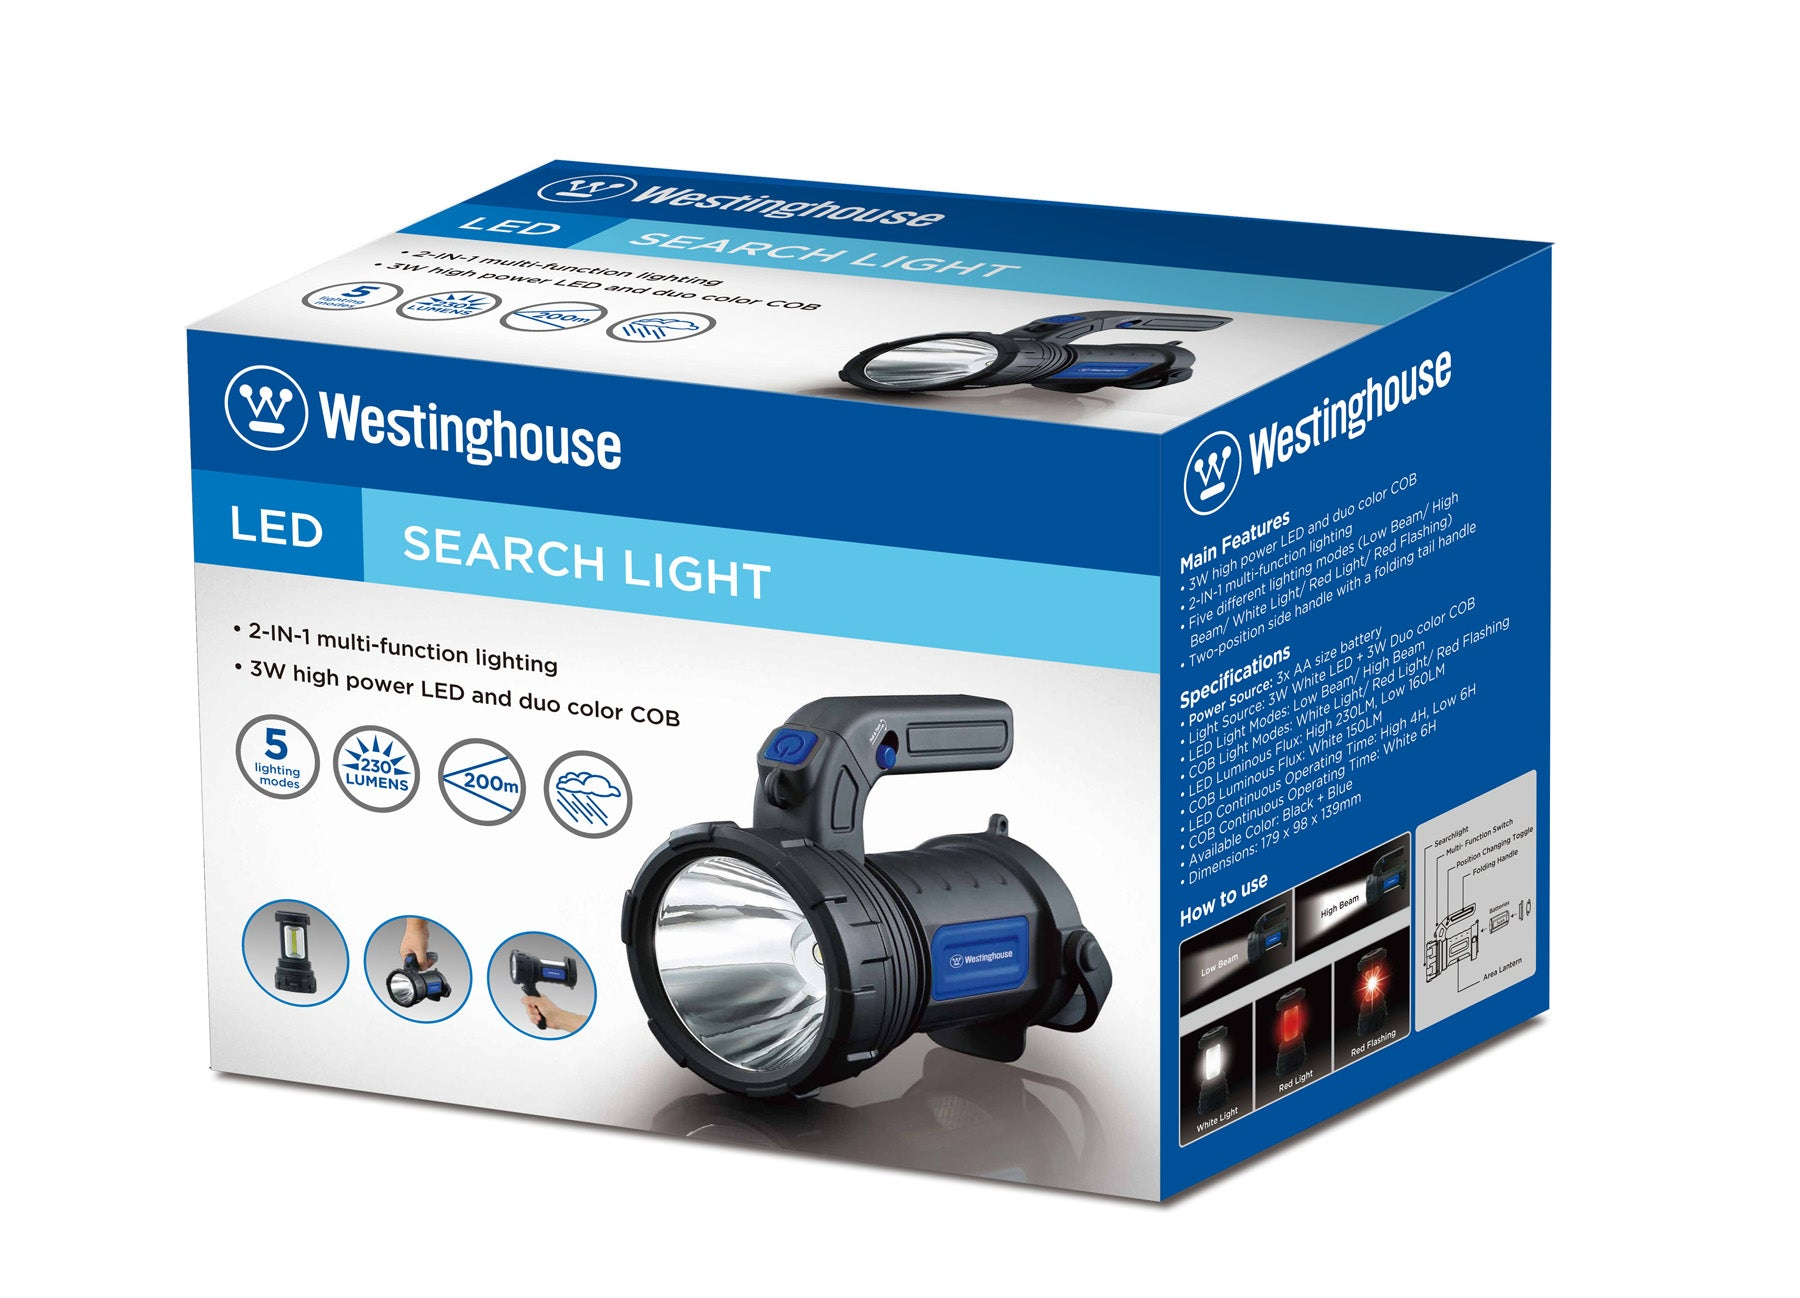 Westinghouse LED Search Light